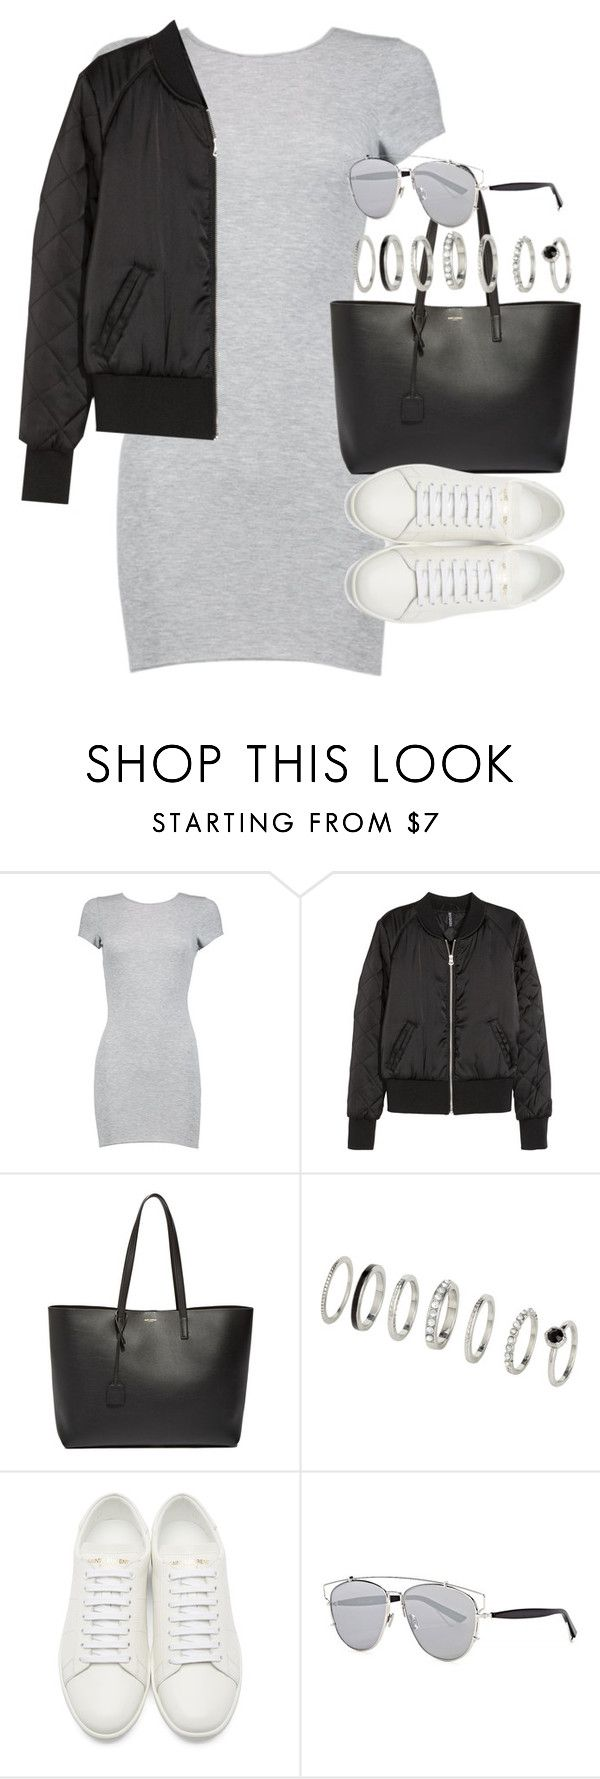 """Outfit with a dress and bomber jacket"" by ferned ❤ liked on Polyvore featuring Boohoo, H&M, Yves Saint Laurent and Christian Dior"